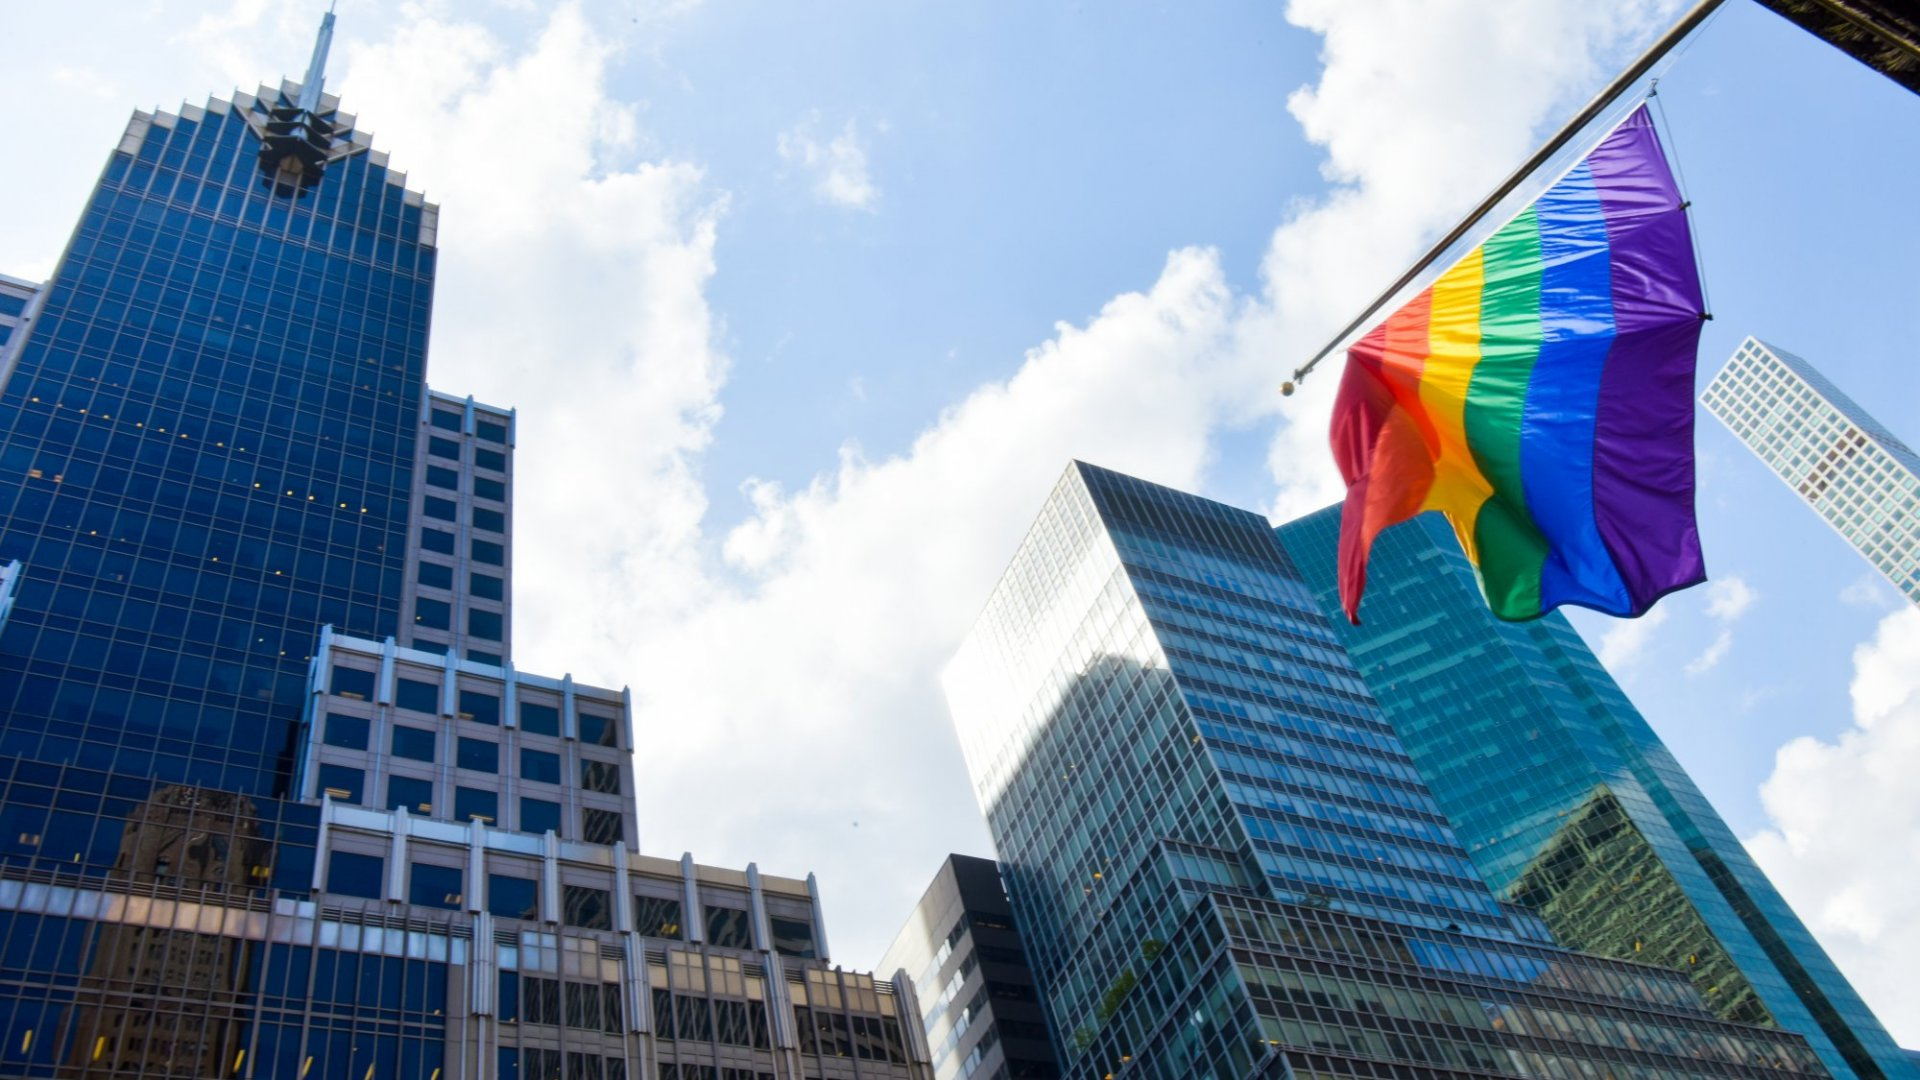 This LGBT Certification May Help Your Business Land Major Contracts. Here's How to Get One